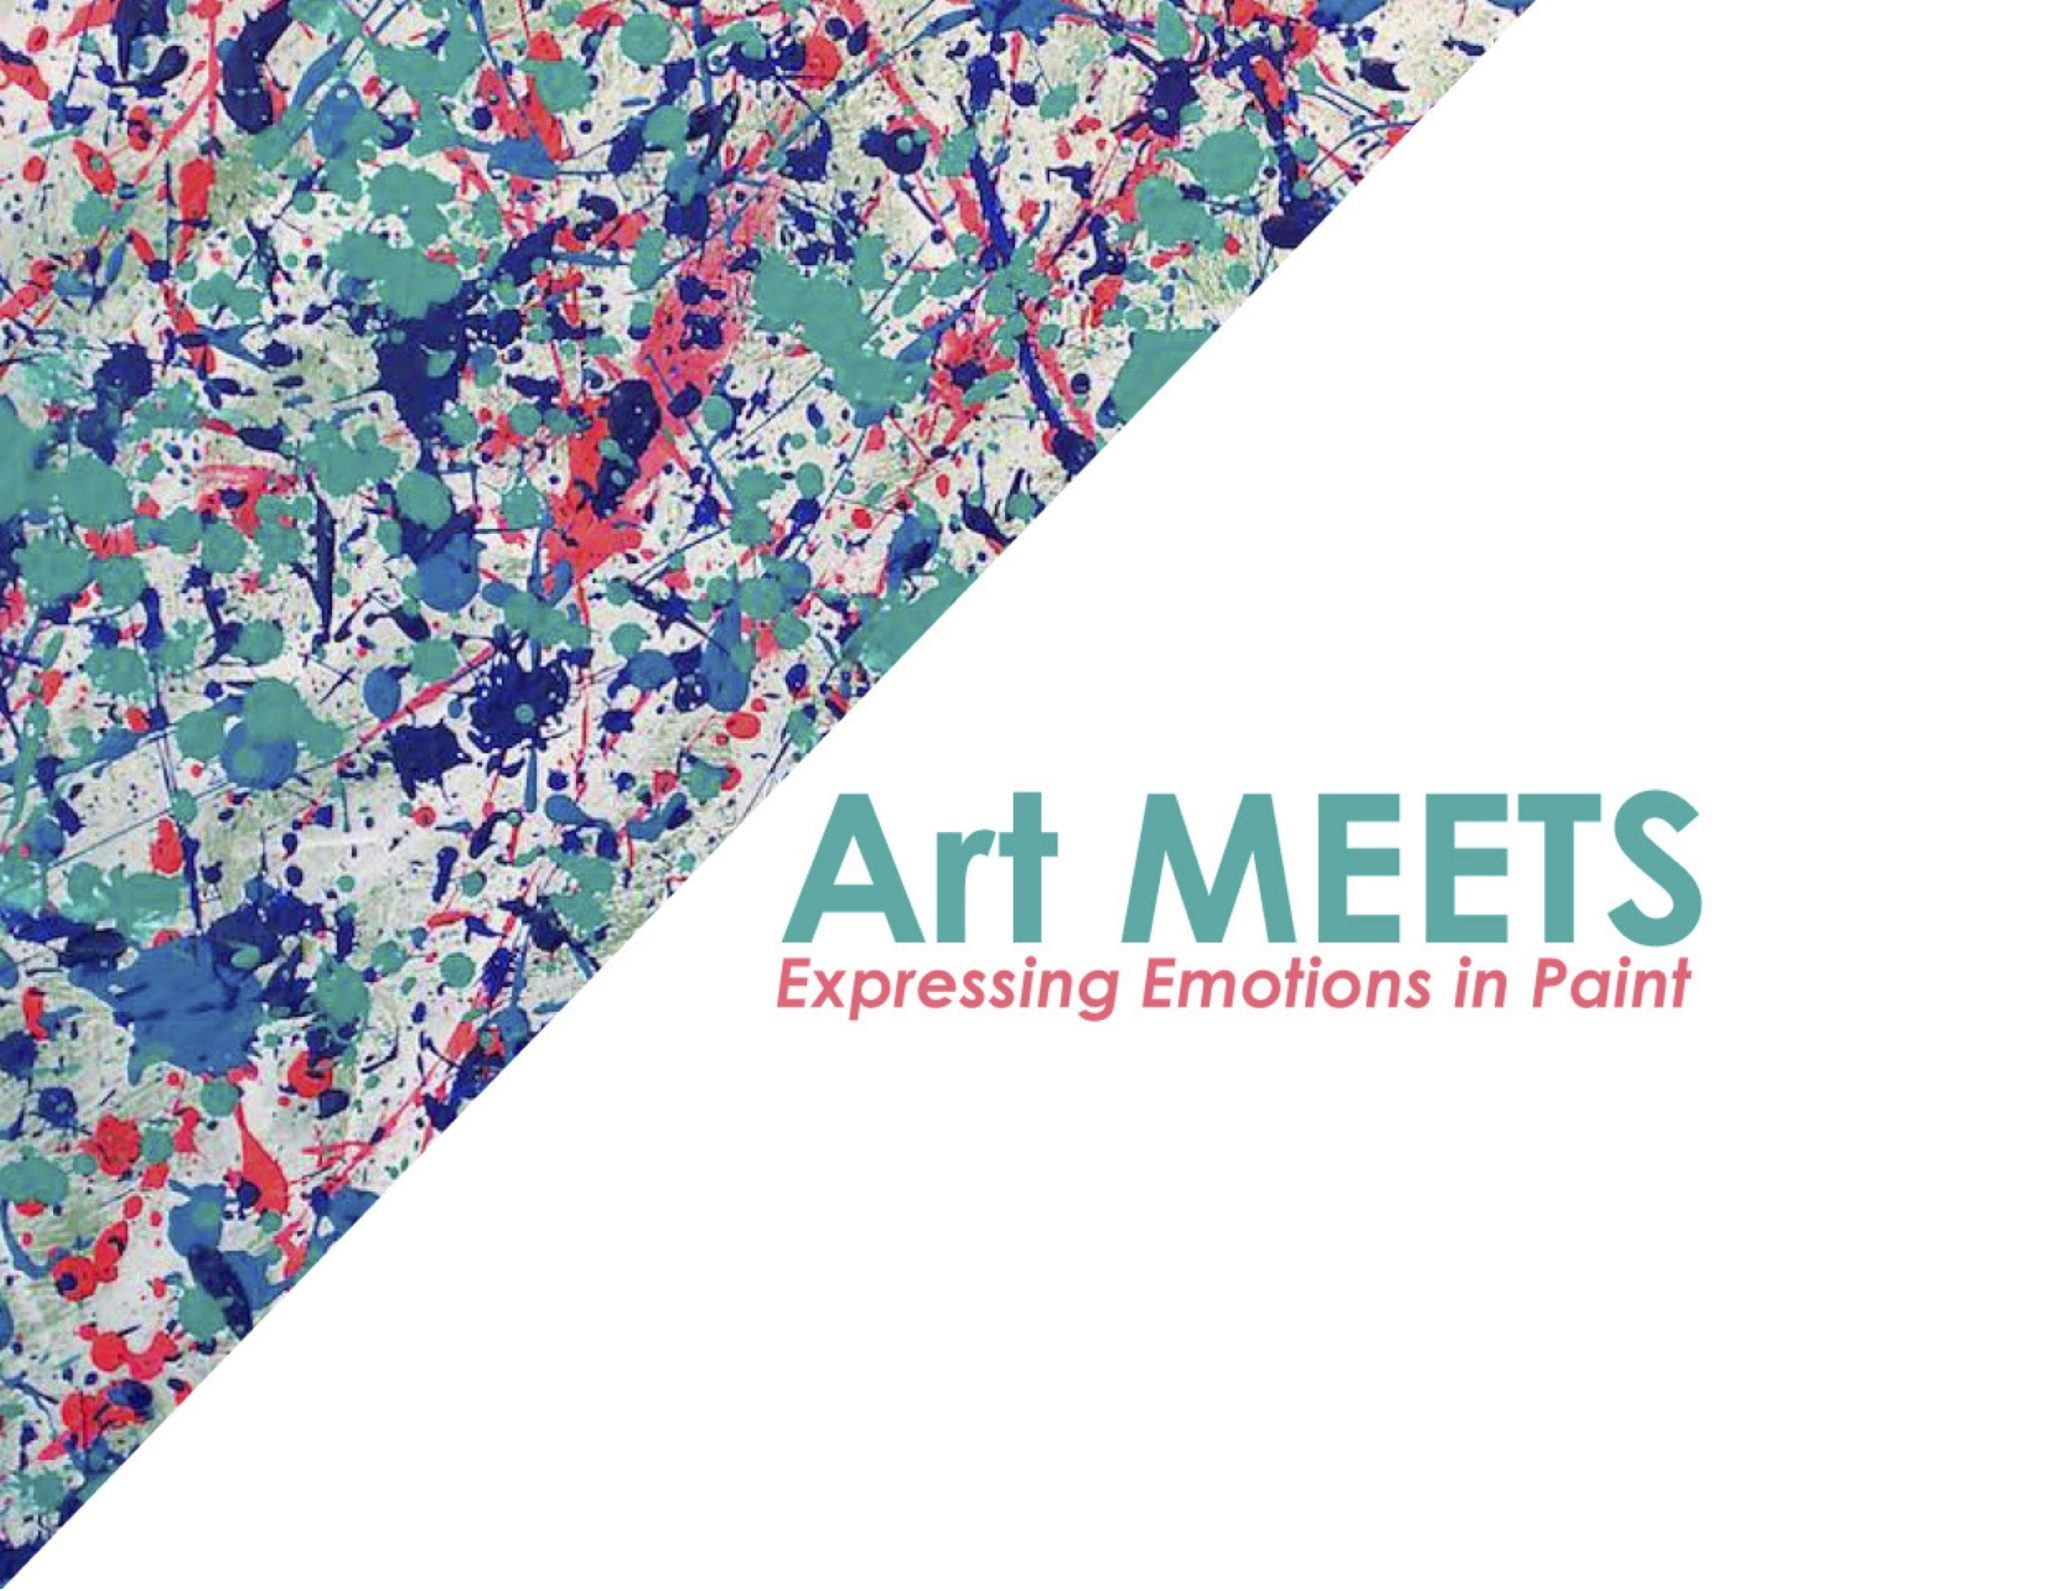 Art MEETS: Expressing Emotions In Paint